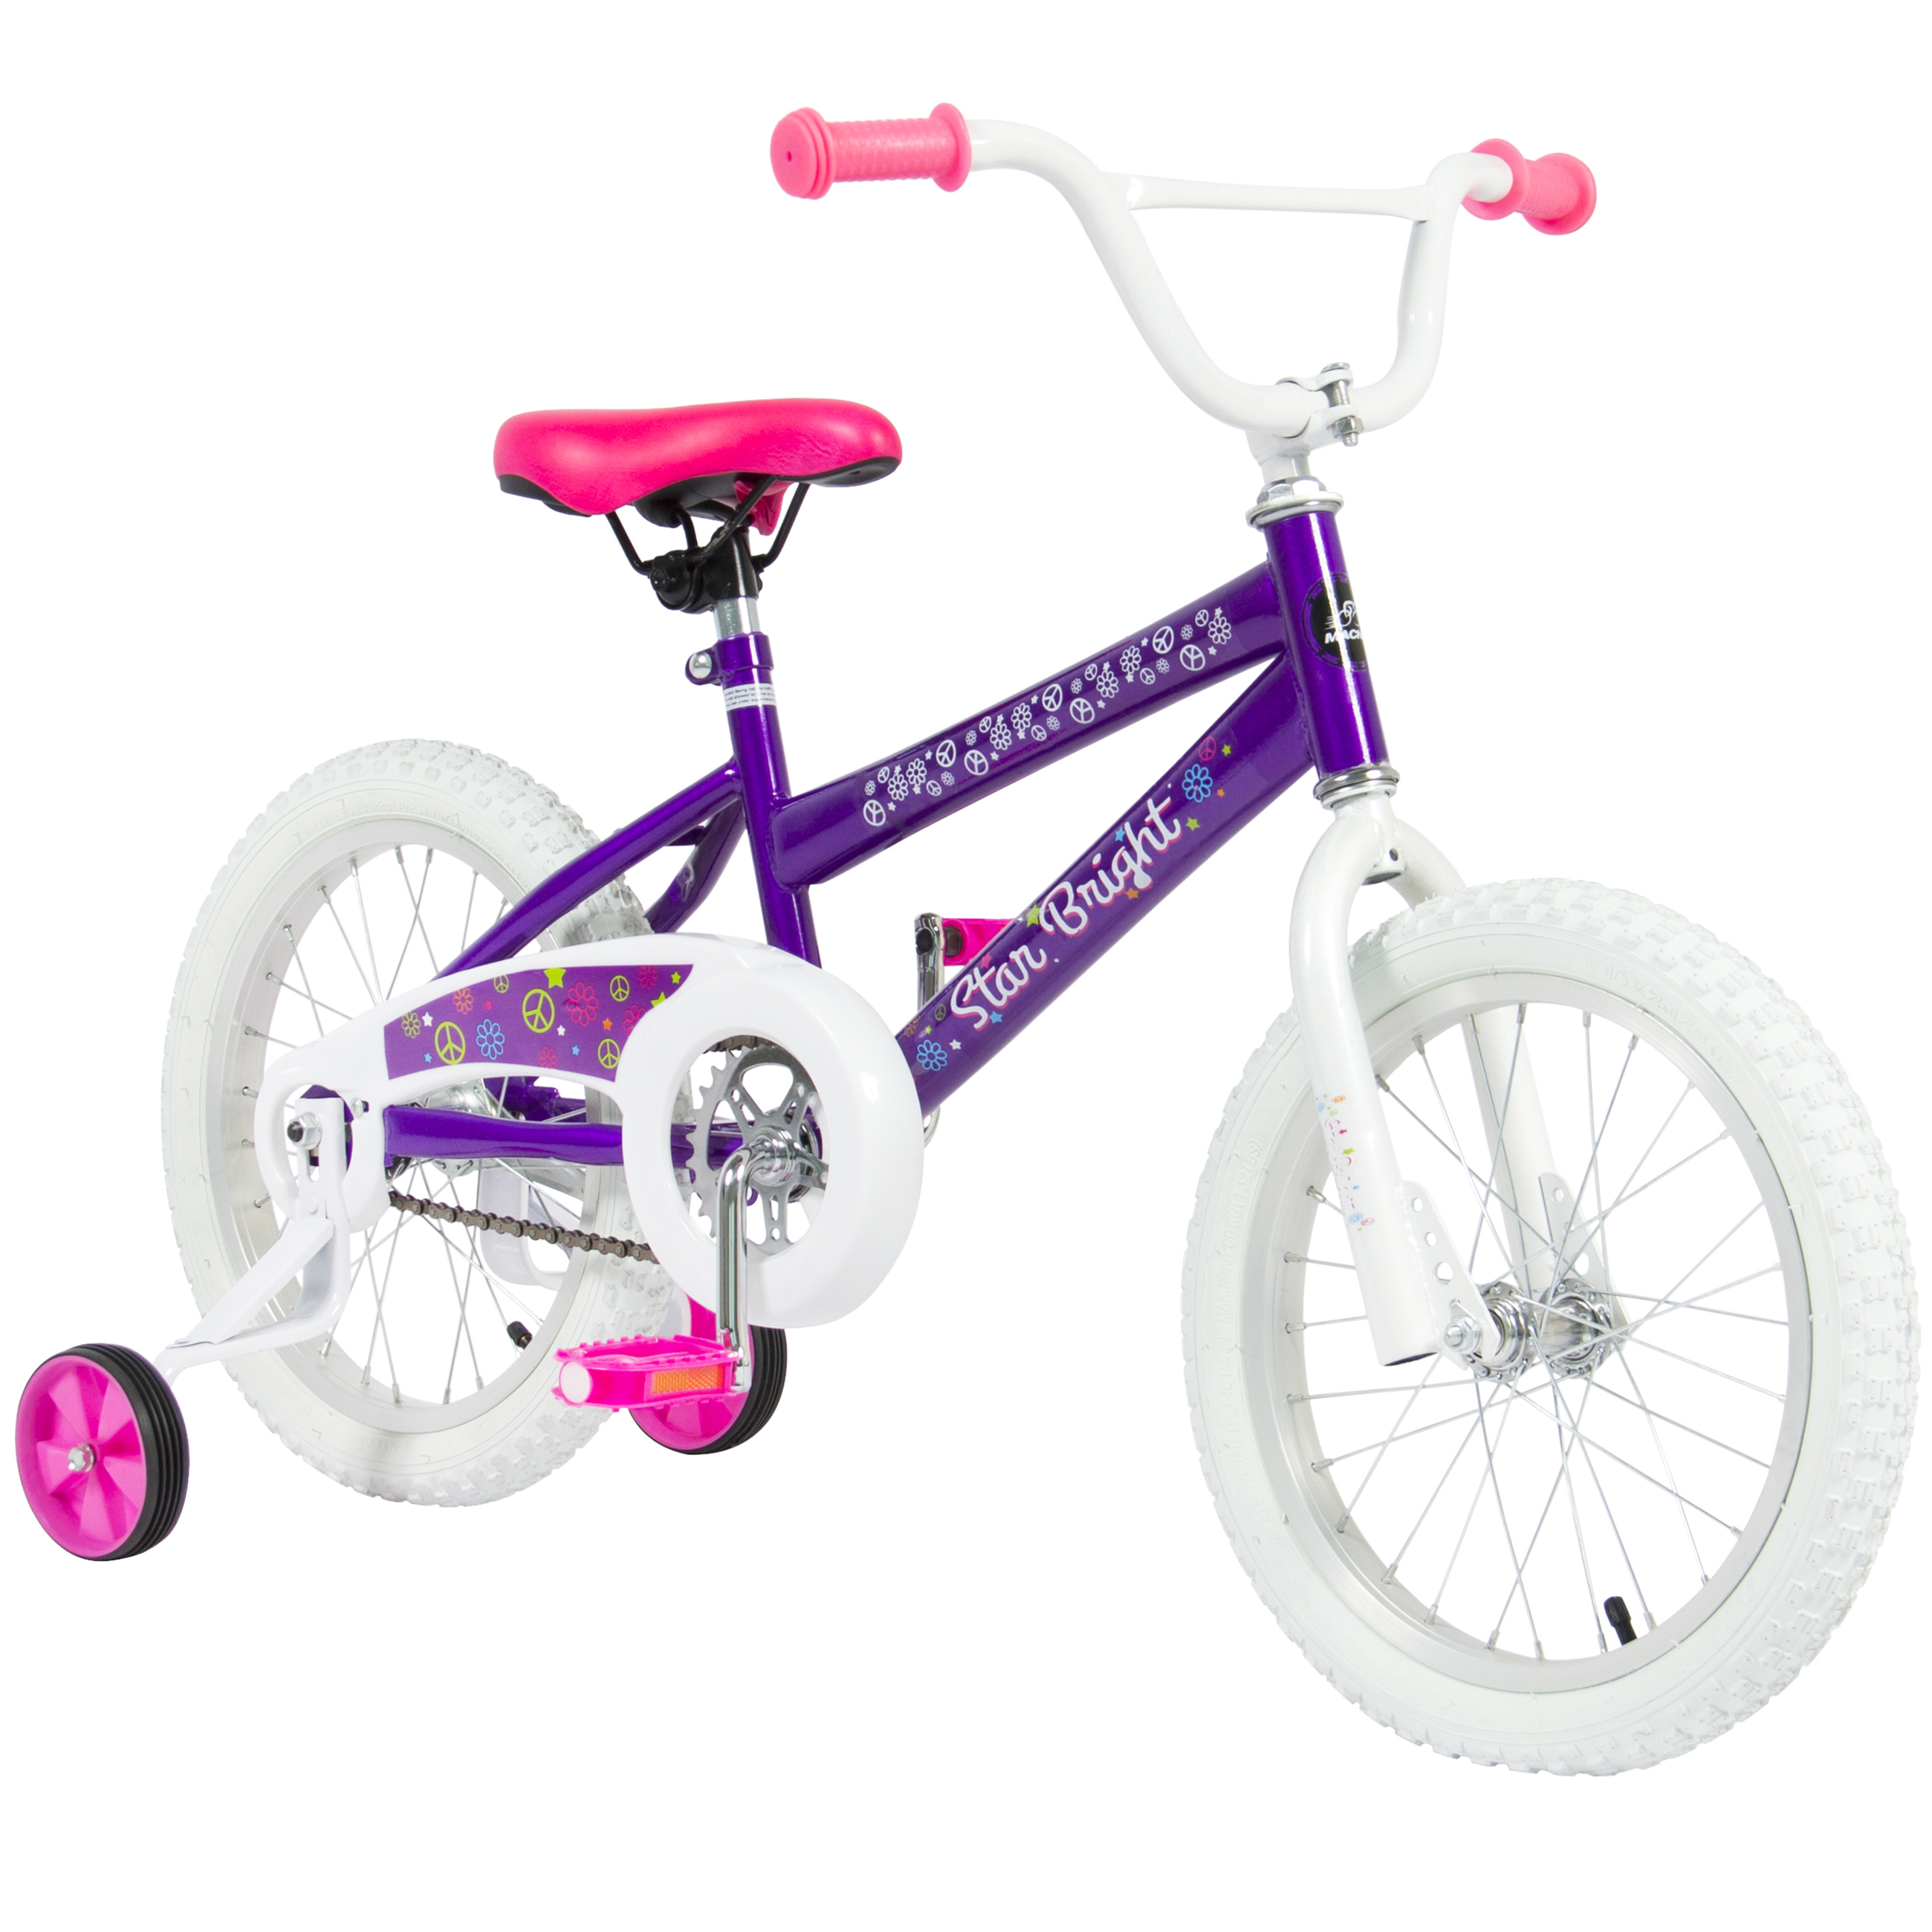 "Best Choice Products 16"" Girl's Purple Princess Bicycle W/ Removable Training Wheels Kid's BMX Style Bike"